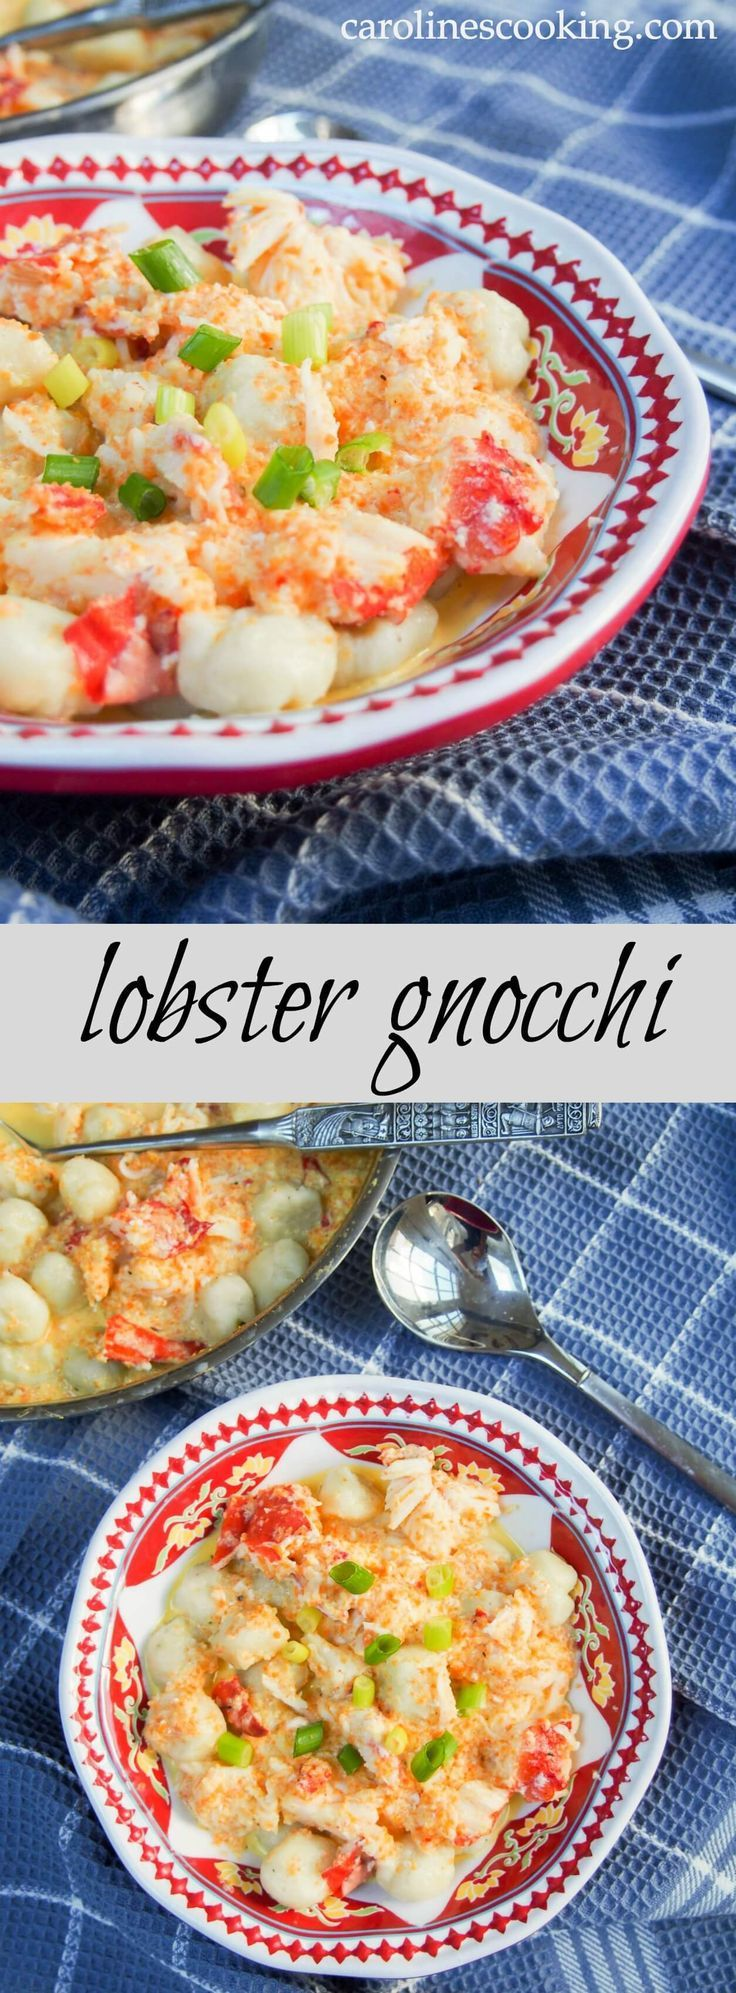 Lobster gnocchi - delicious potato gnocchi with a hint of smooth goat's cheese in a flavorful, creamy lobster sauce. Delicate flavors, incredibly tasty.